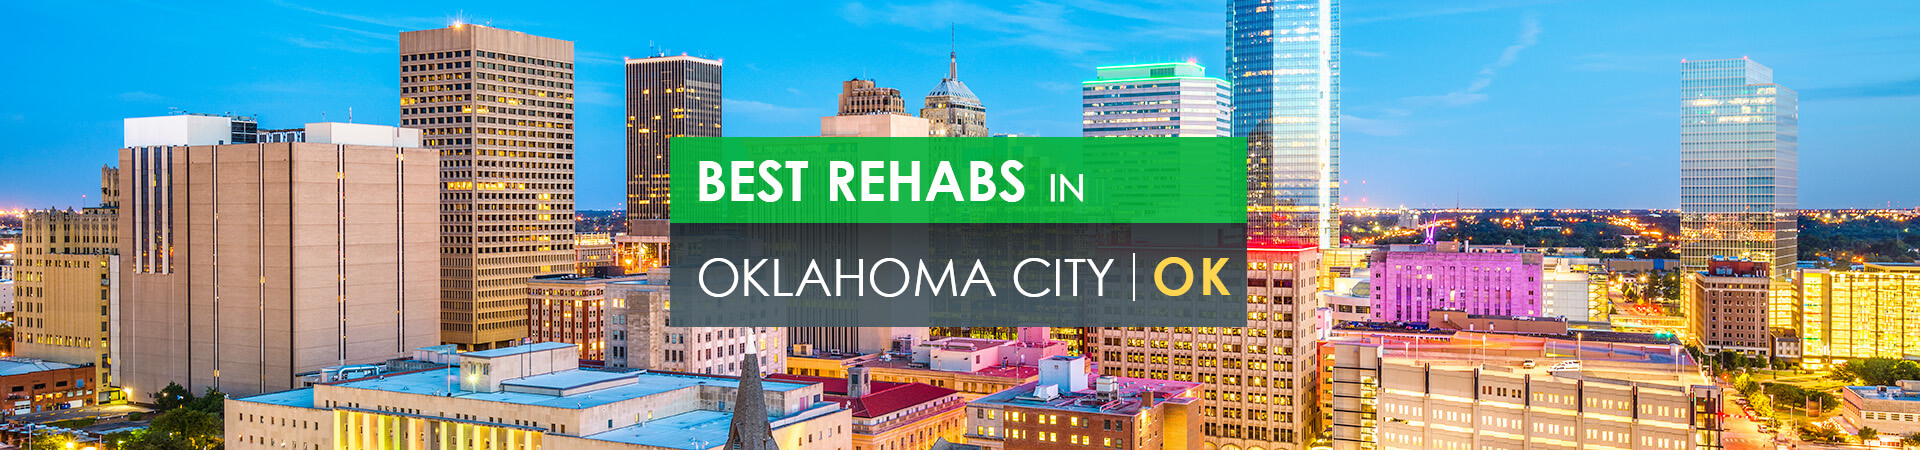 Best rehabs in Oklahoma City, OK